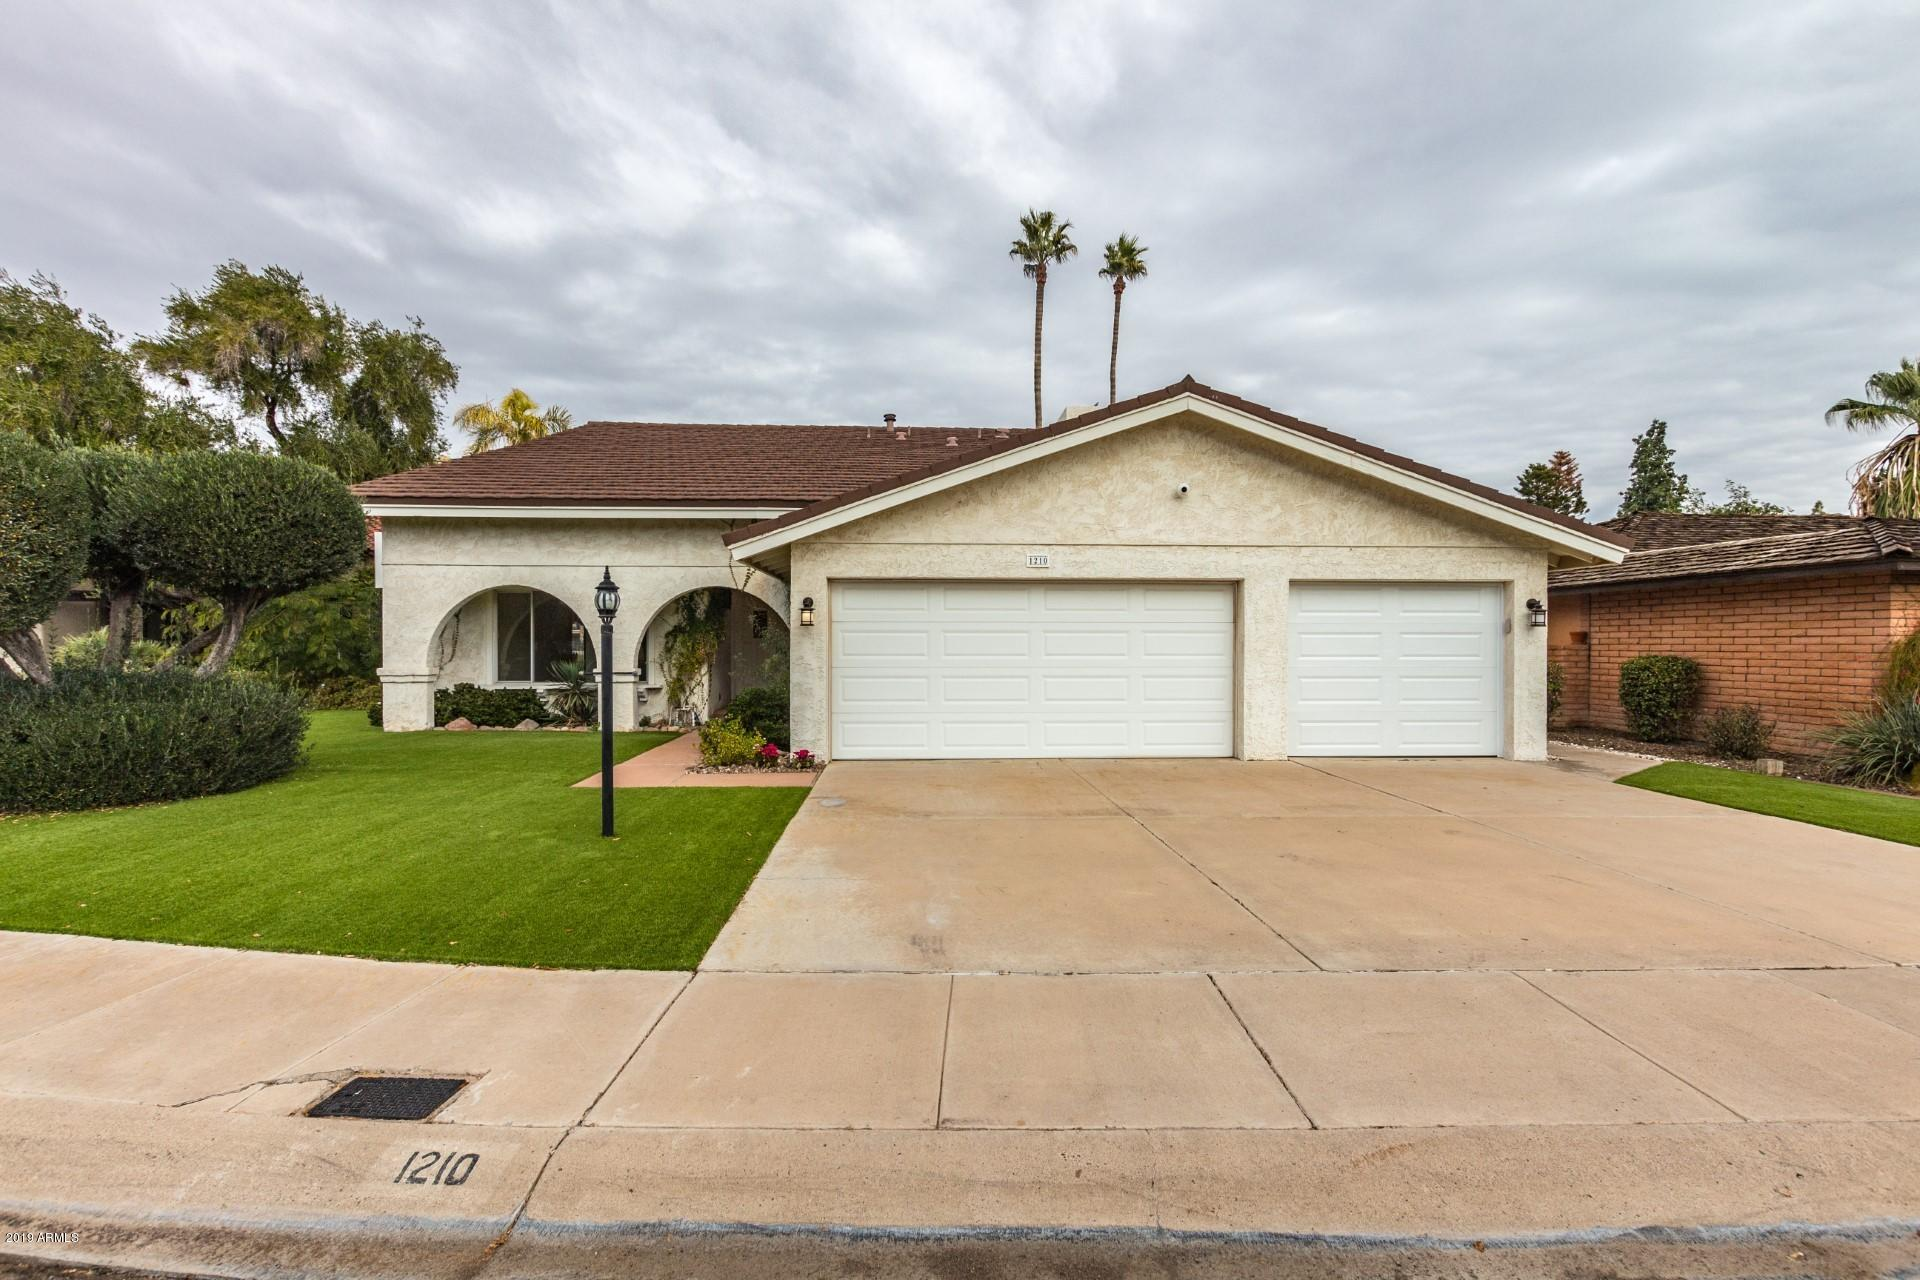 Photo of 1210 E HARBOR VIEW Drive, Tempe, AZ 85283